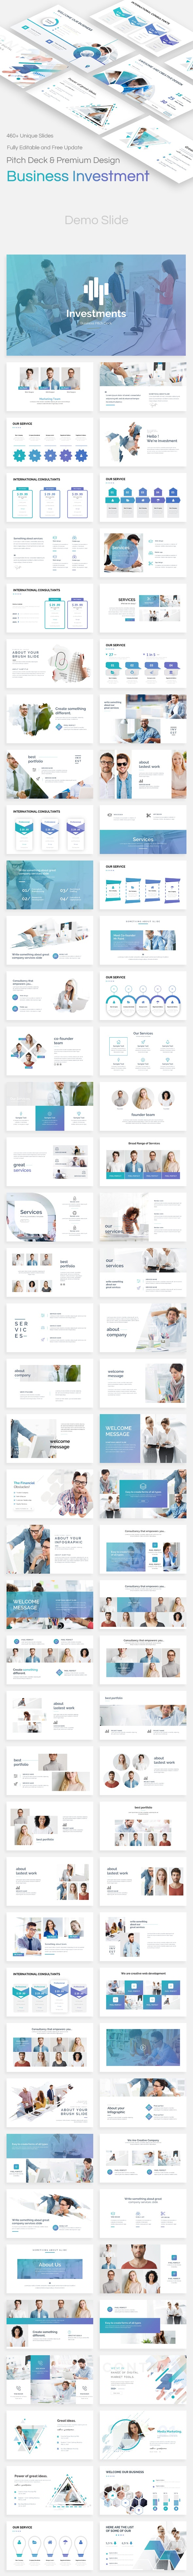 Business Investments Pitch Deck Powerpoint Template - Business PowerPoint Templates